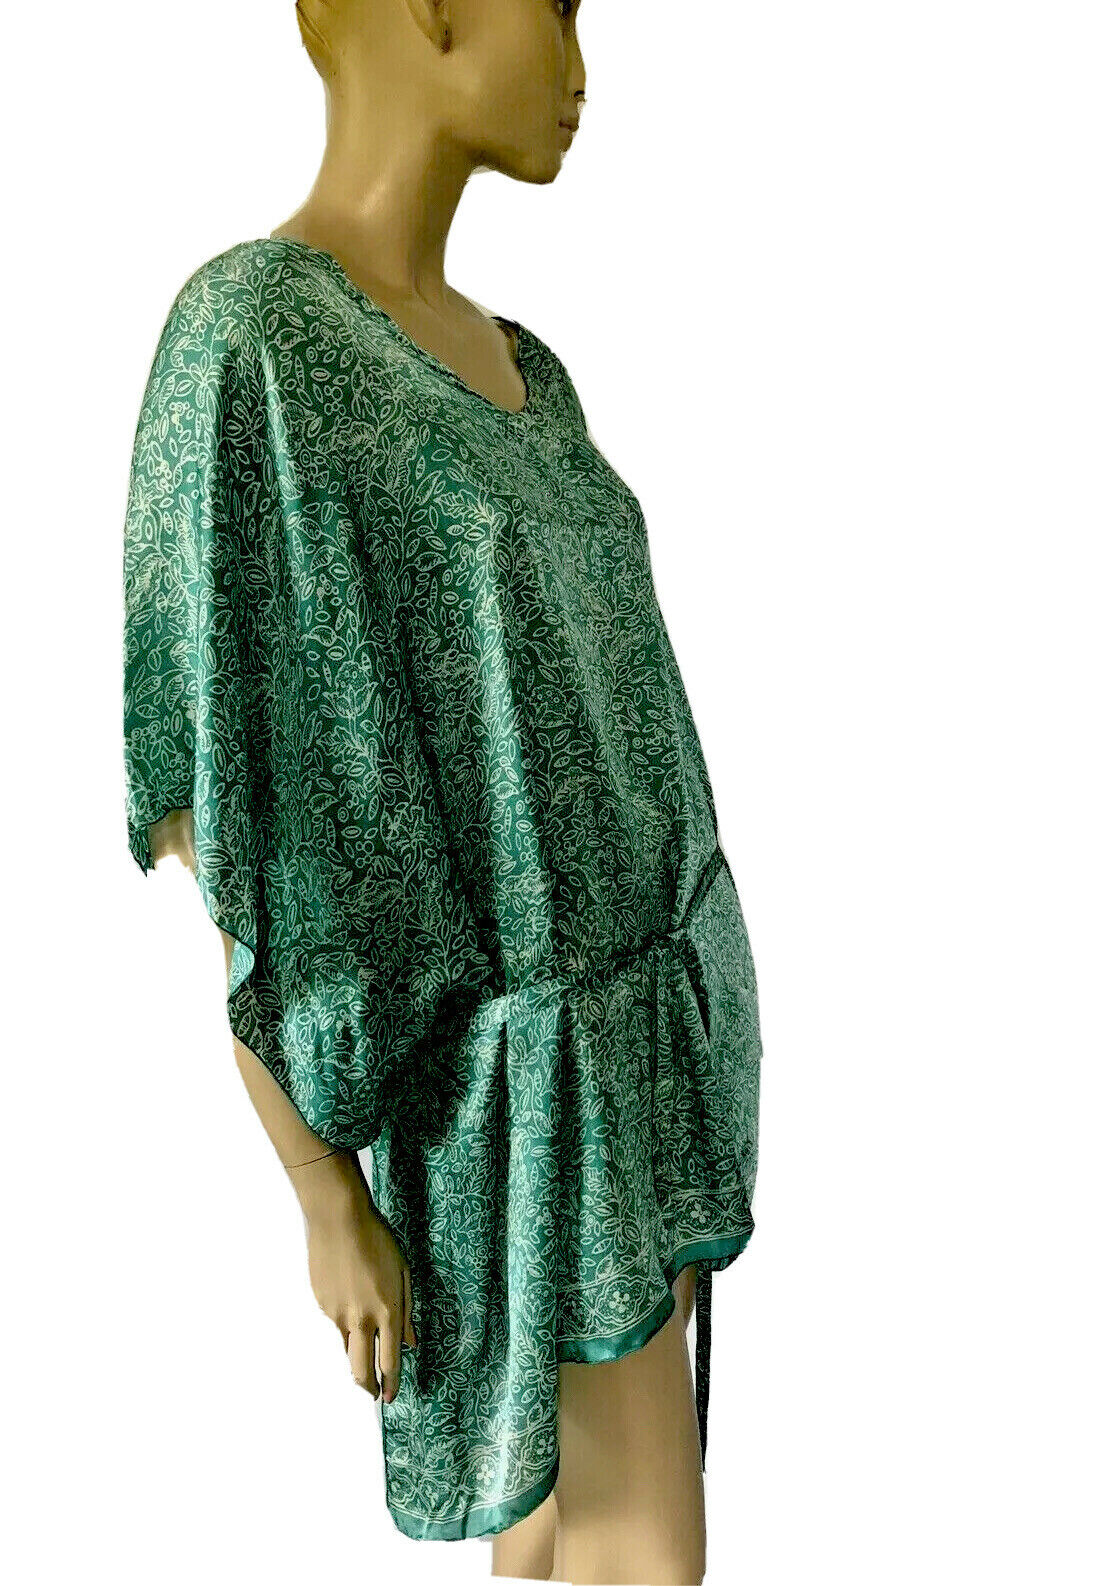 HAND MADE IN INDONESIA GREEN FLORAL PRINT SILK CA… - image 3